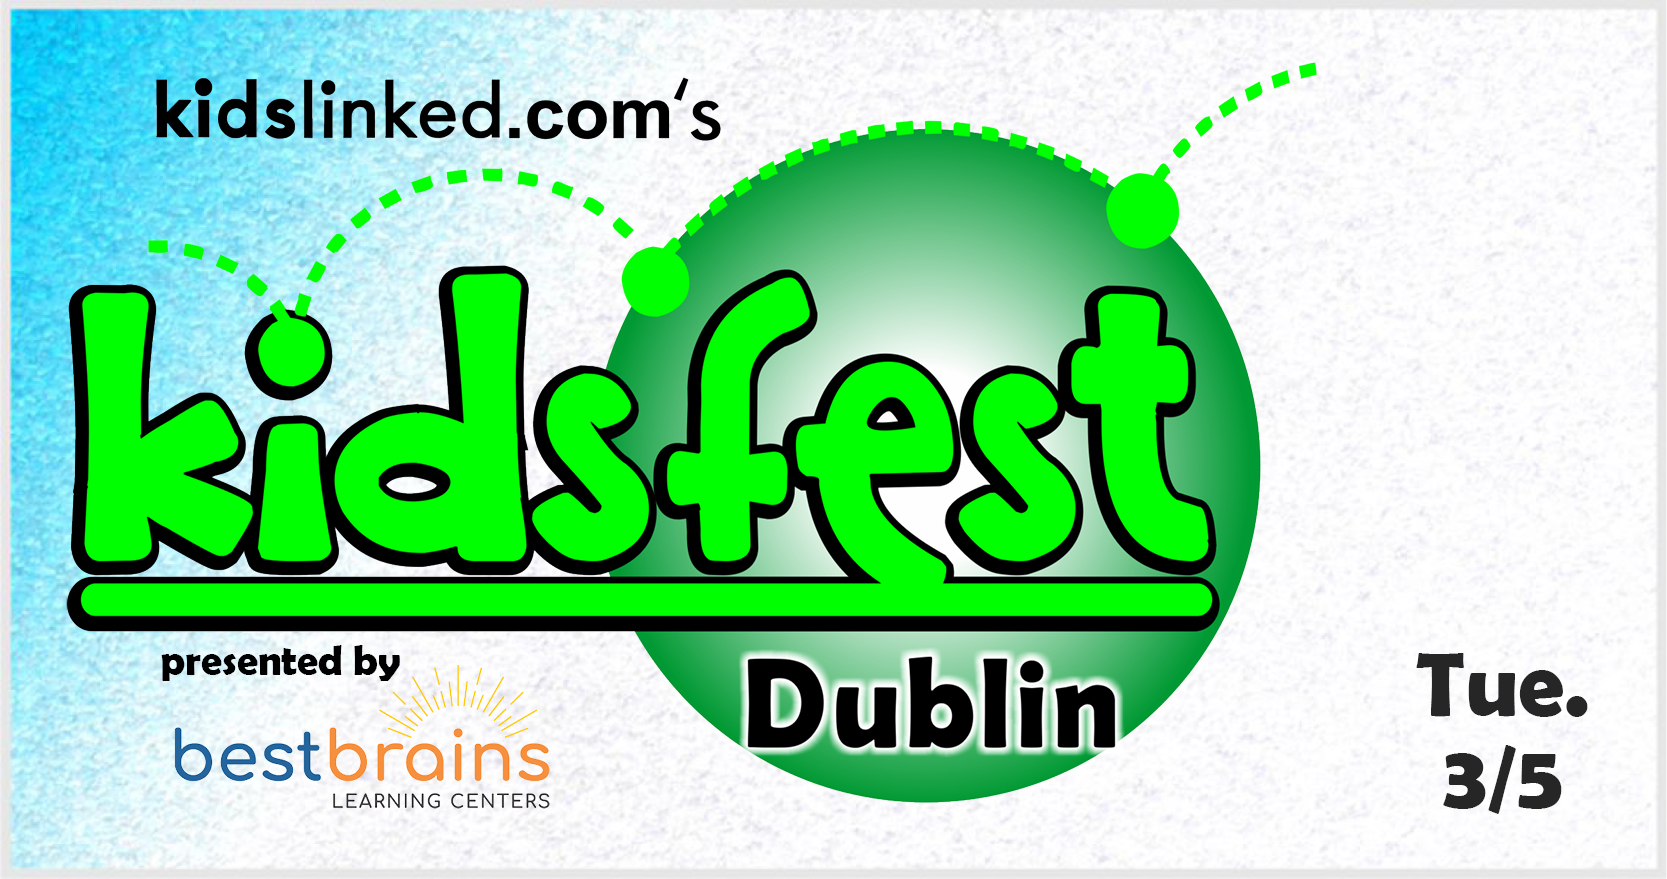 Dublin KidsFest 2019 presented by Best Brains Learning Centers